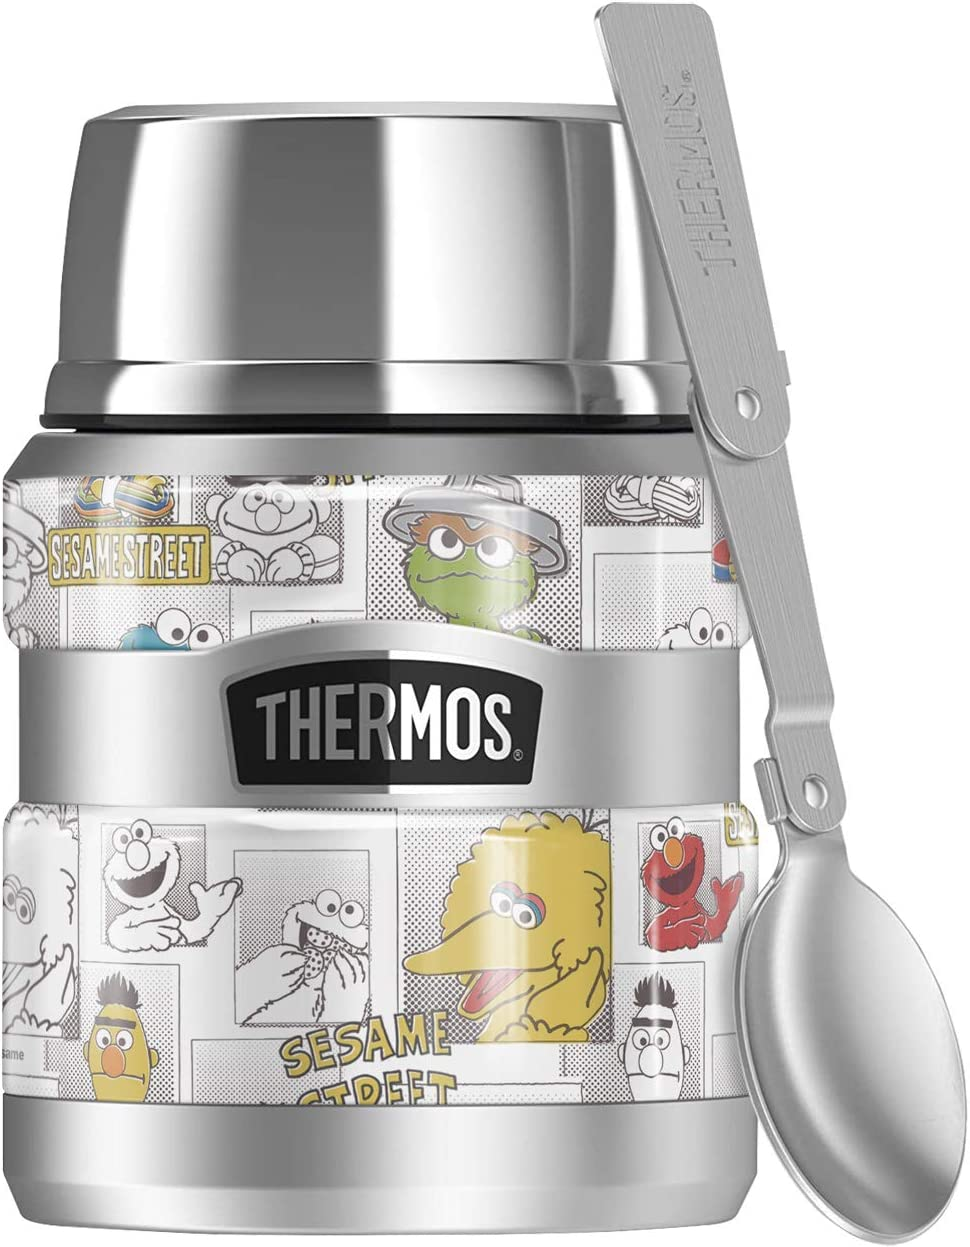 Sesame Street Character Comic Panels THERMOS STAINLESS KING Stainless Steel Food Jar with Folding Spoon, Vacuum insulated & Double Wall, 16oz